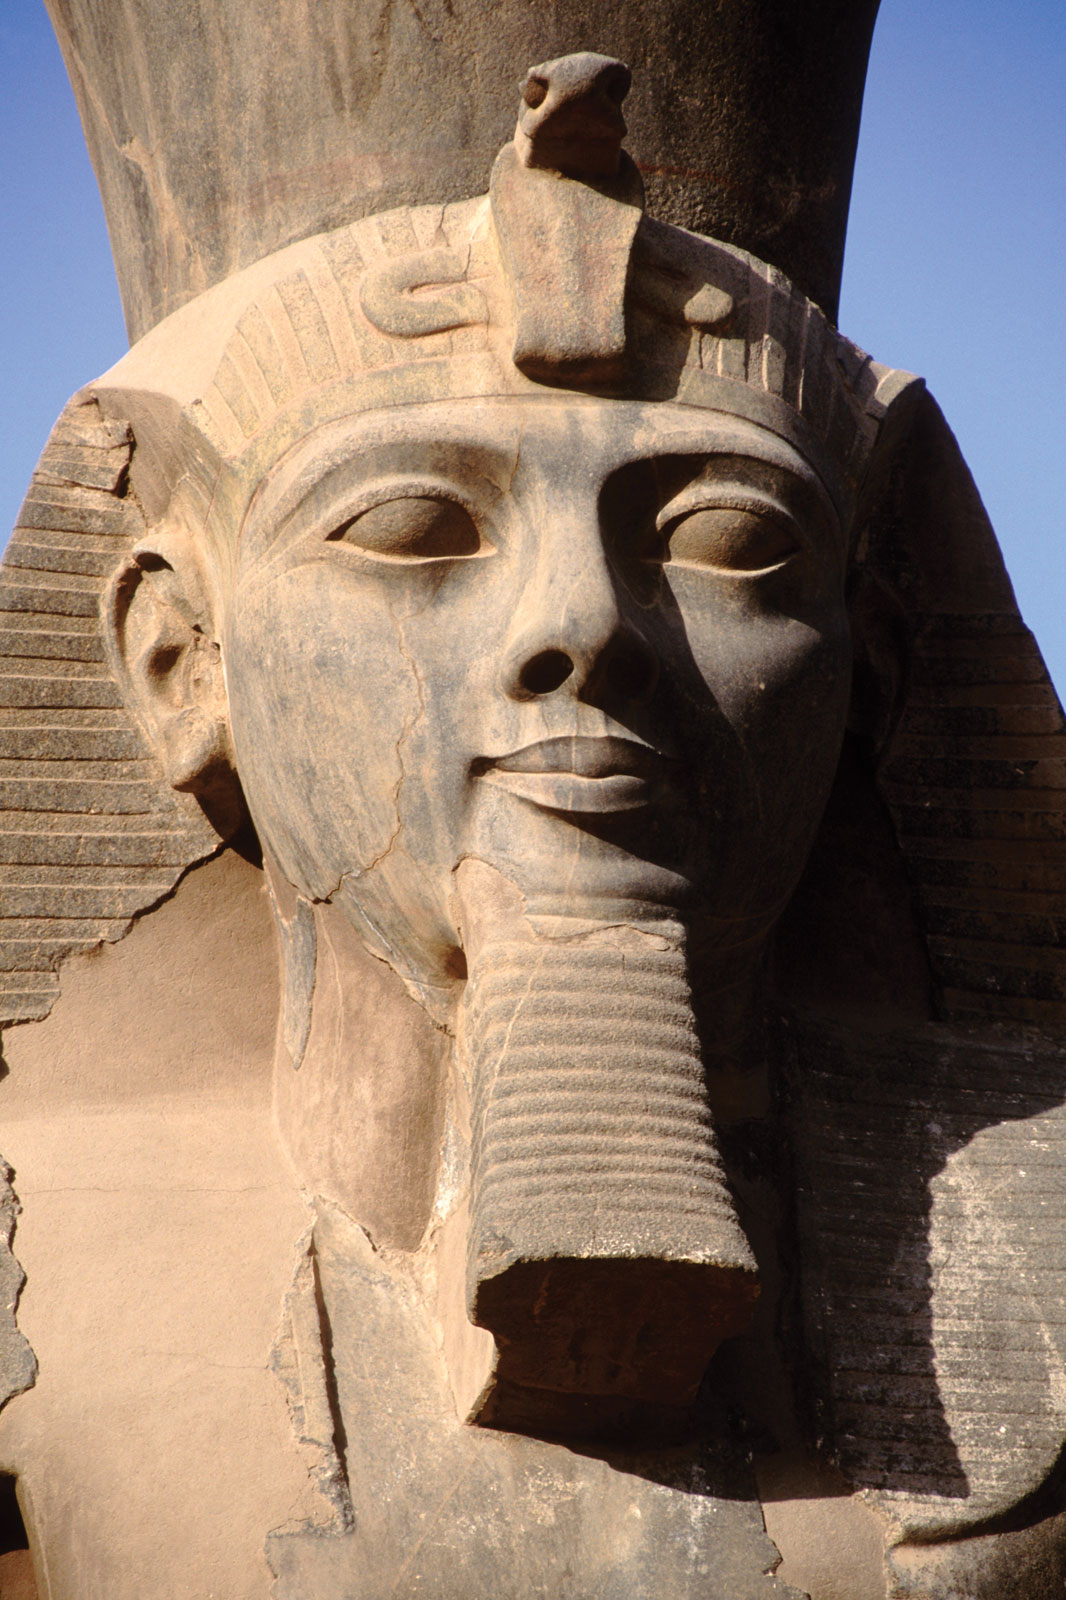 an analysis of the rule of ramses the second the third pharaoh of the nineteenth dynasty in egypt Was the third pharaoh of the 19th dynasty of egypt in his second year, ramesses ii decisively defeated the so the rule of the pharaoh was strong.